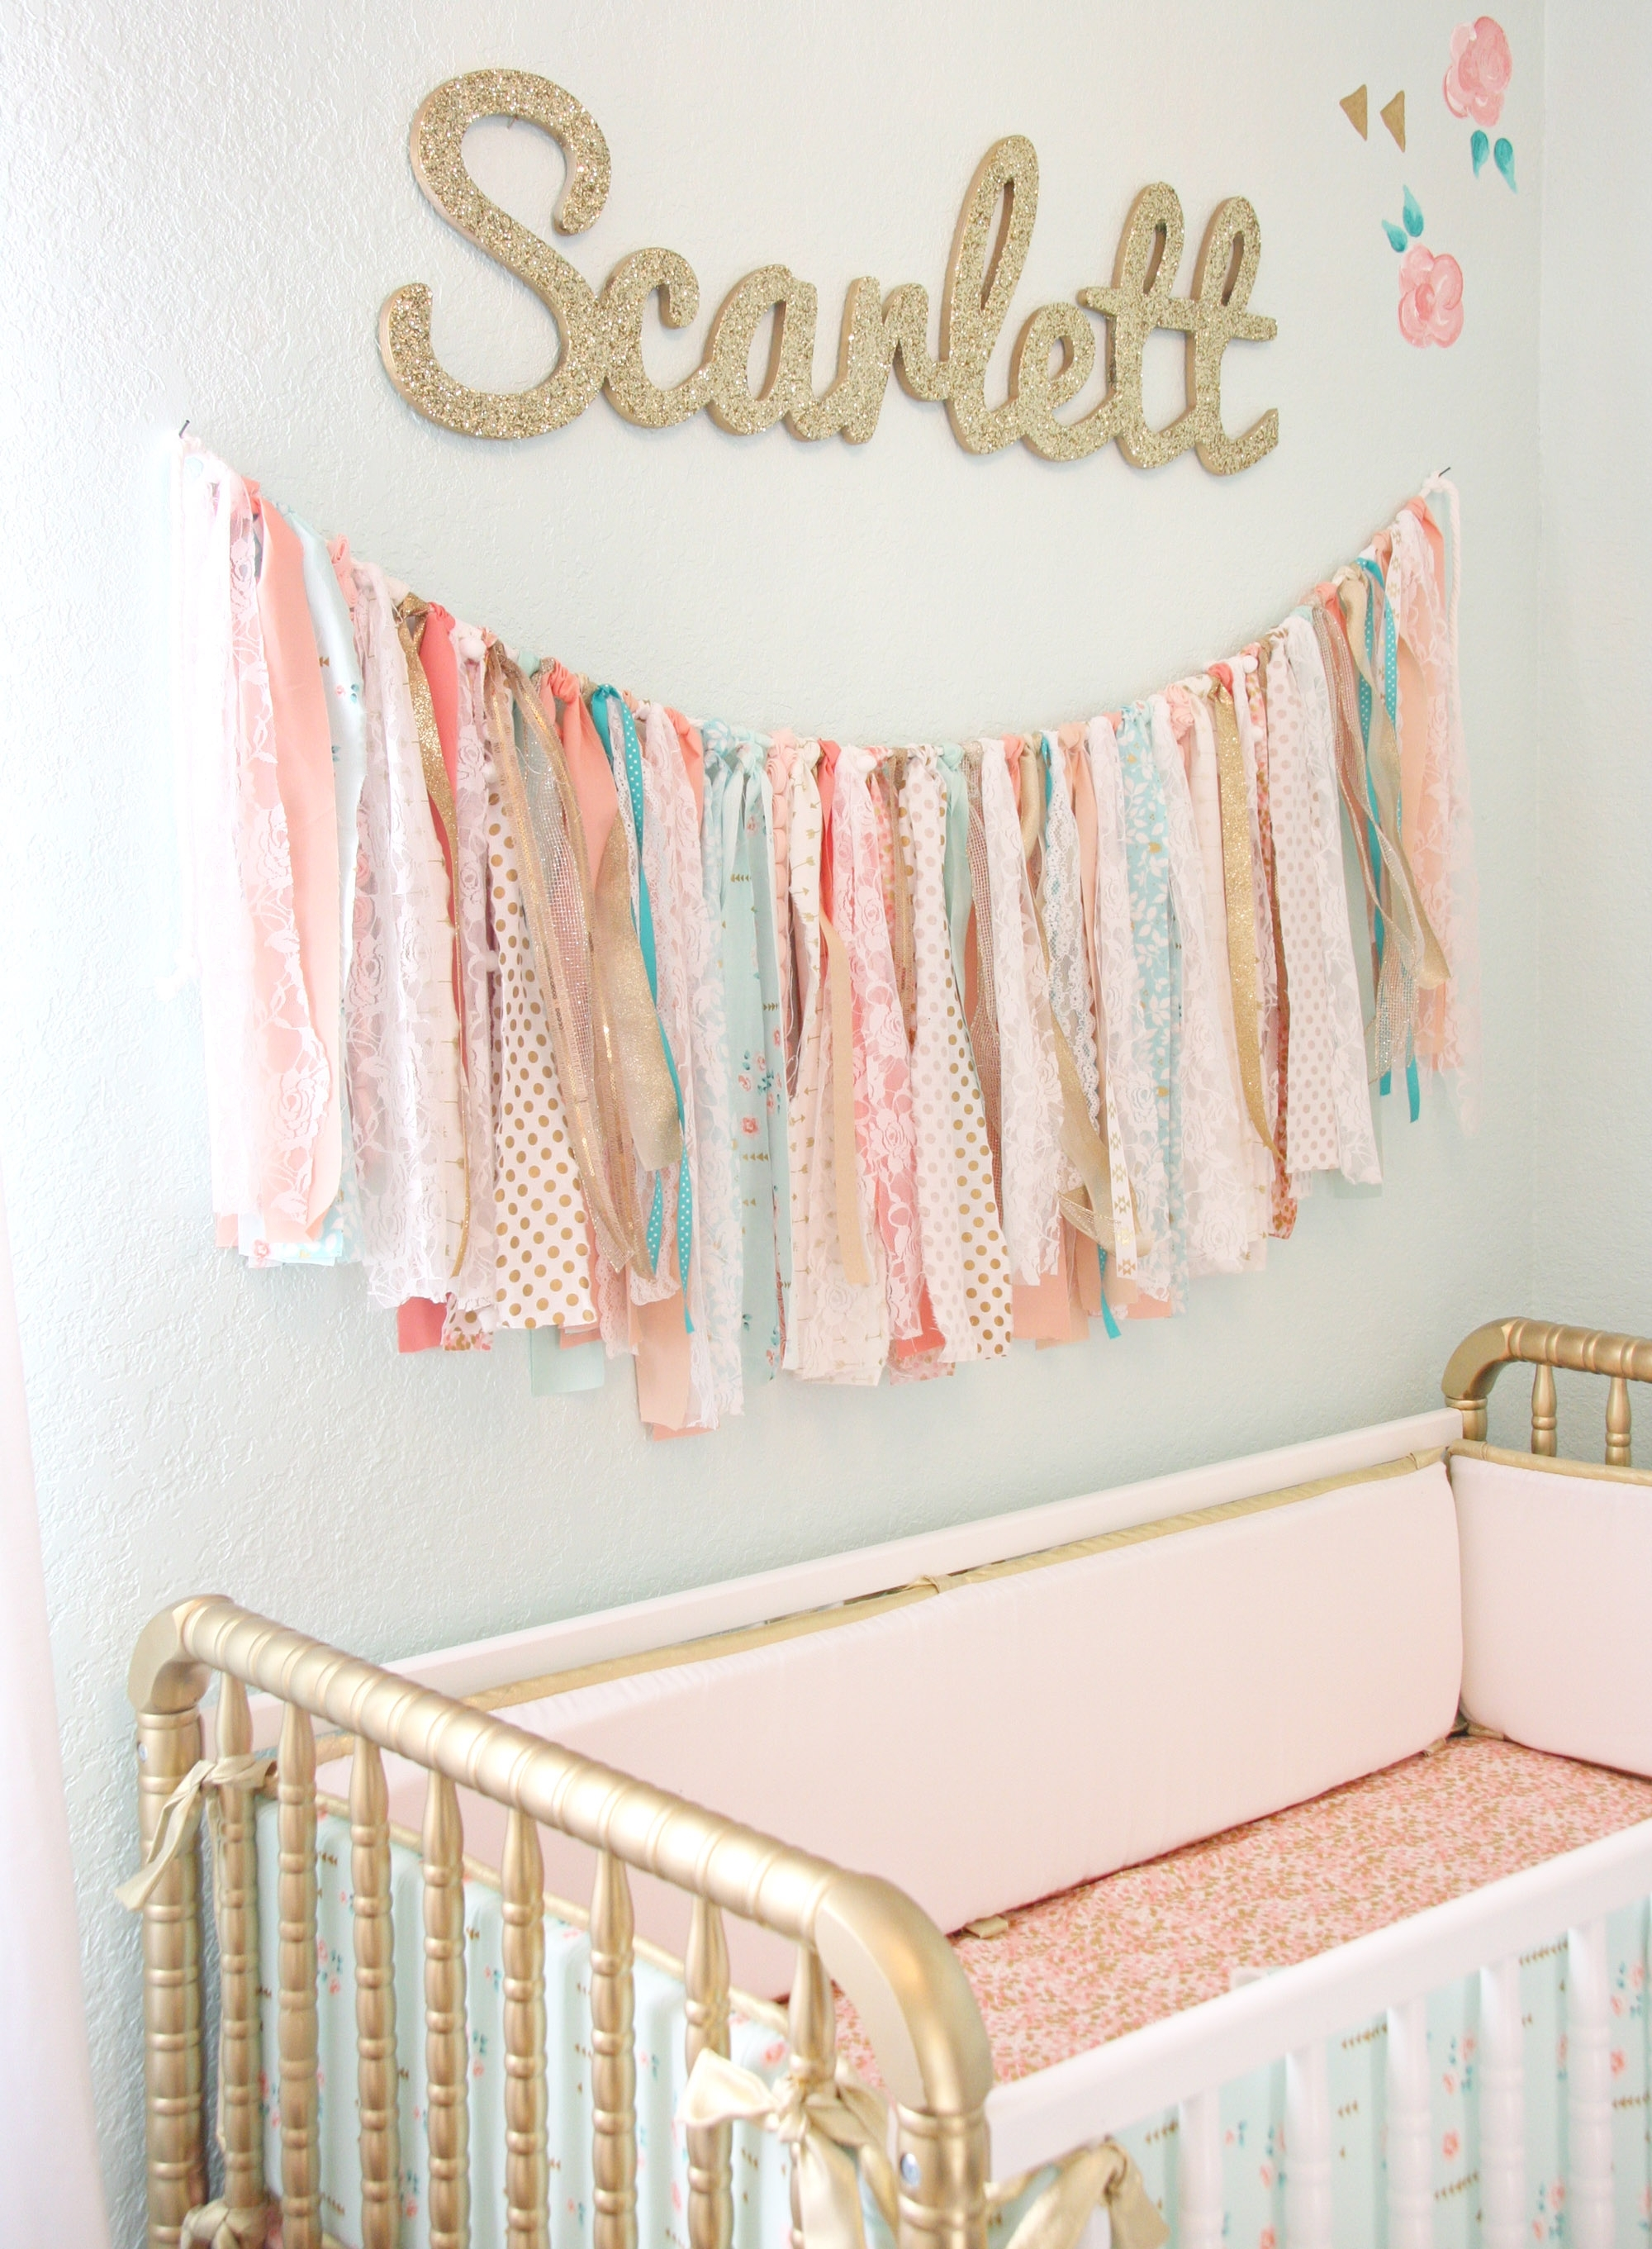 Coral, Mint, And Gold Vintage Style: Scarlett's Nursery Reveal Regarding Most Current Fabric Wall Art For Nursery (View 12 of 15)